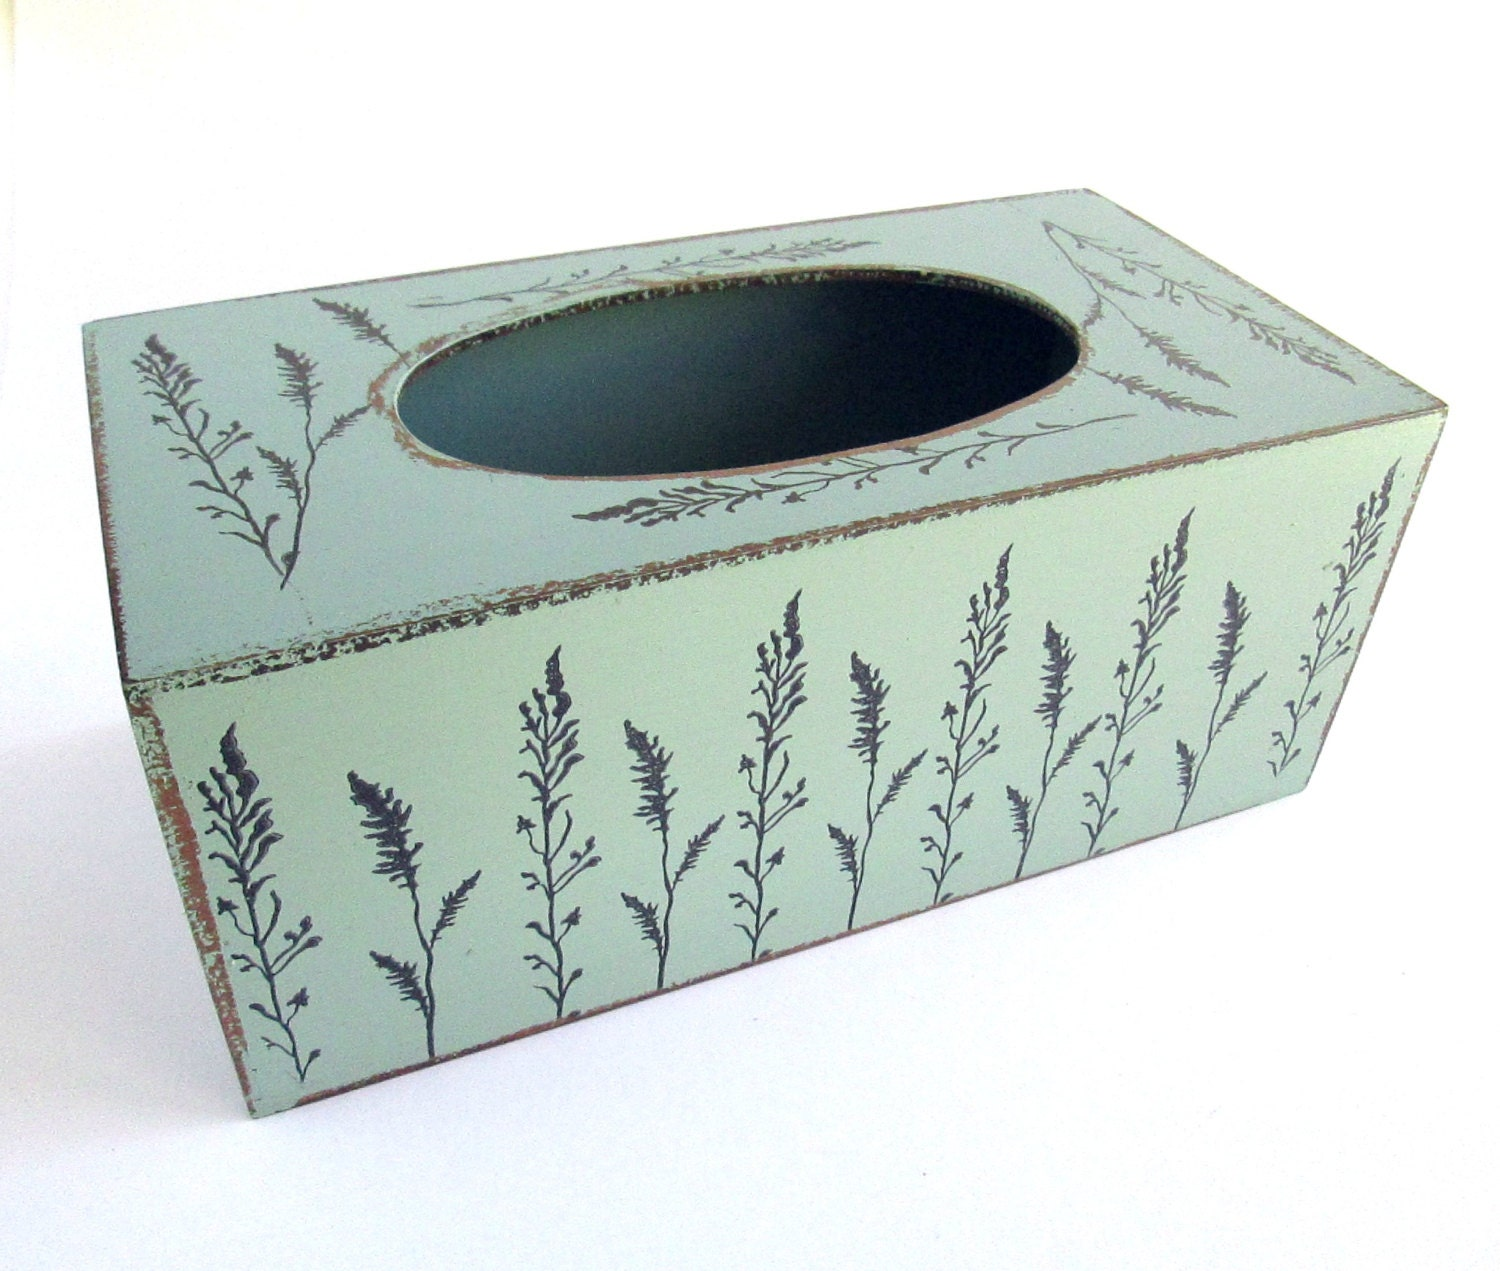 Aqua Tissue Kleenex Box Cover With Floral Leaf Print